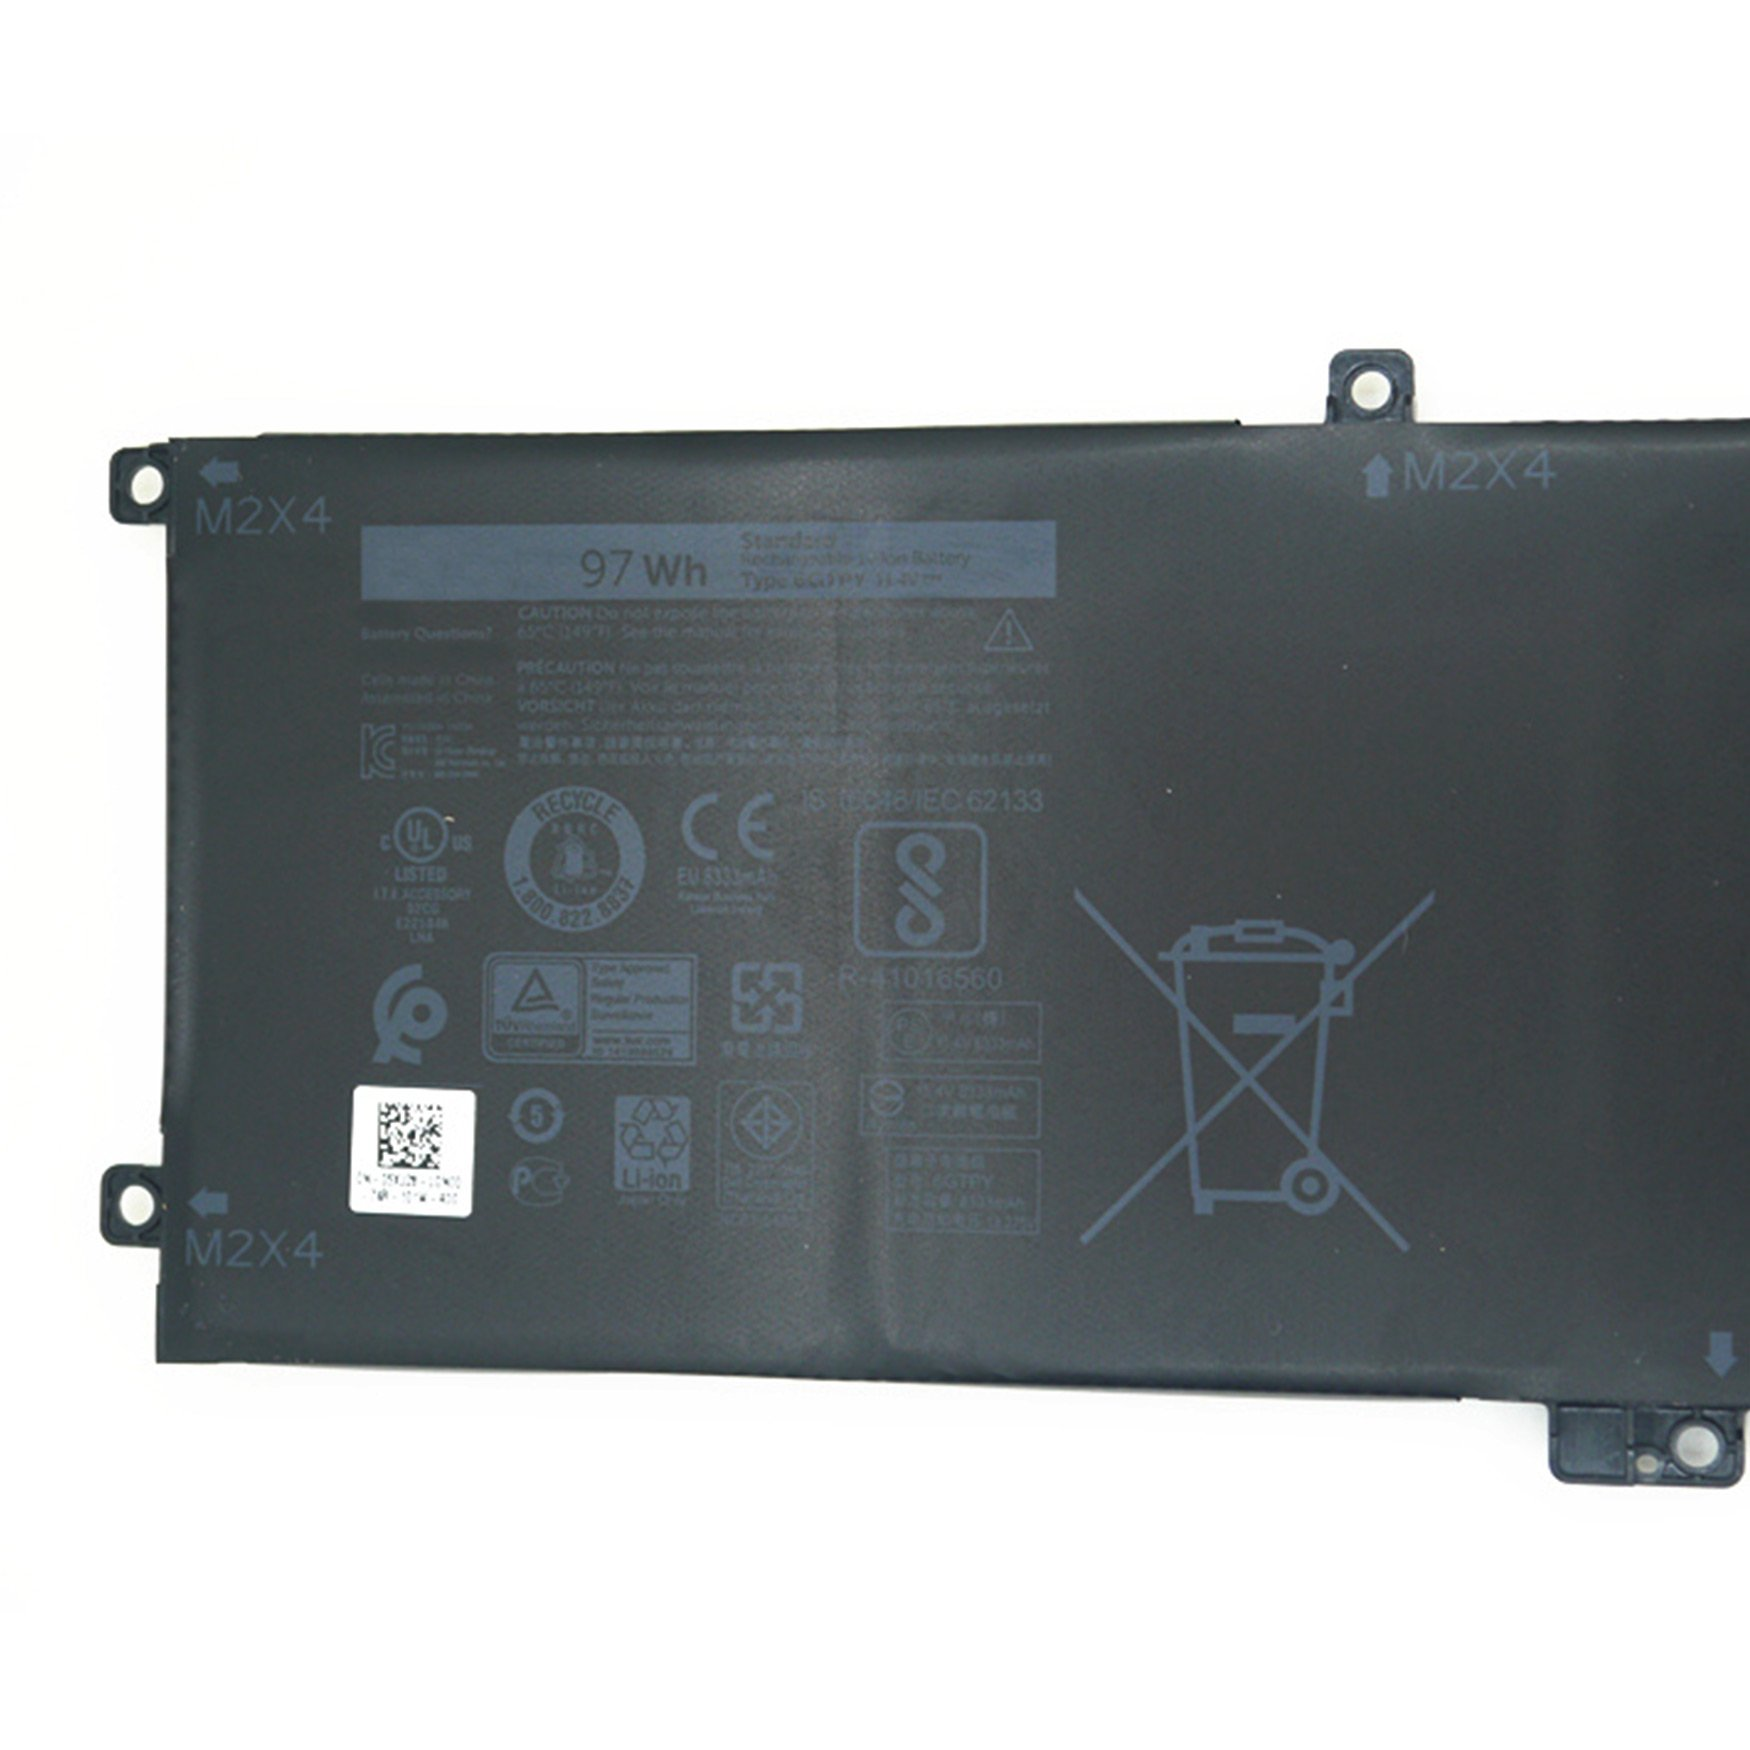 Dentsing 11.4V 97Wh 6GTPY battery for DELL XPS15 9550 gpm03 by Dentsing (Image #2)